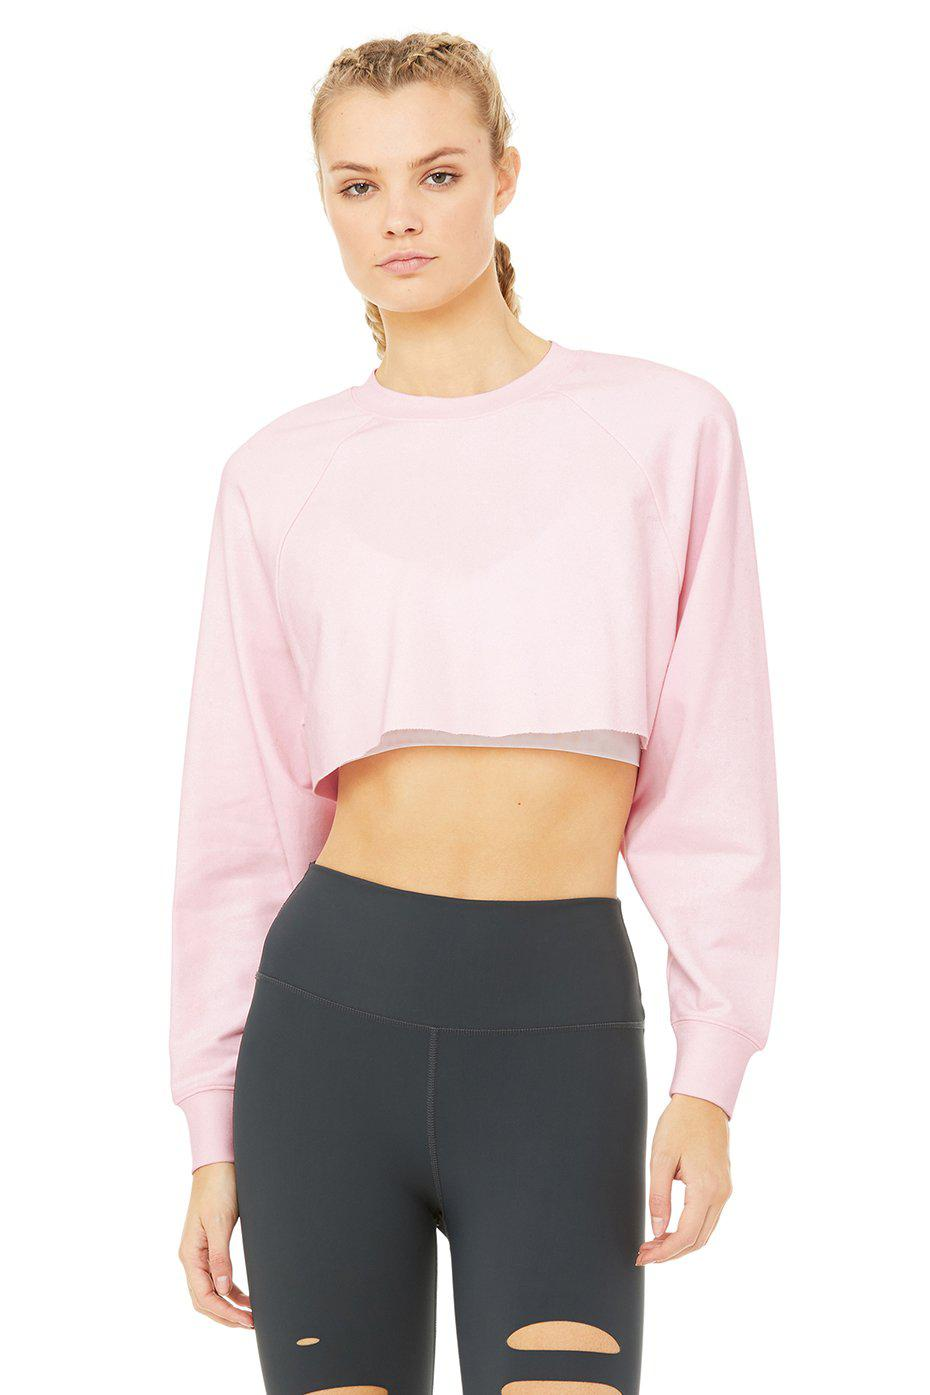 Double Take Pullover - Soft Pink